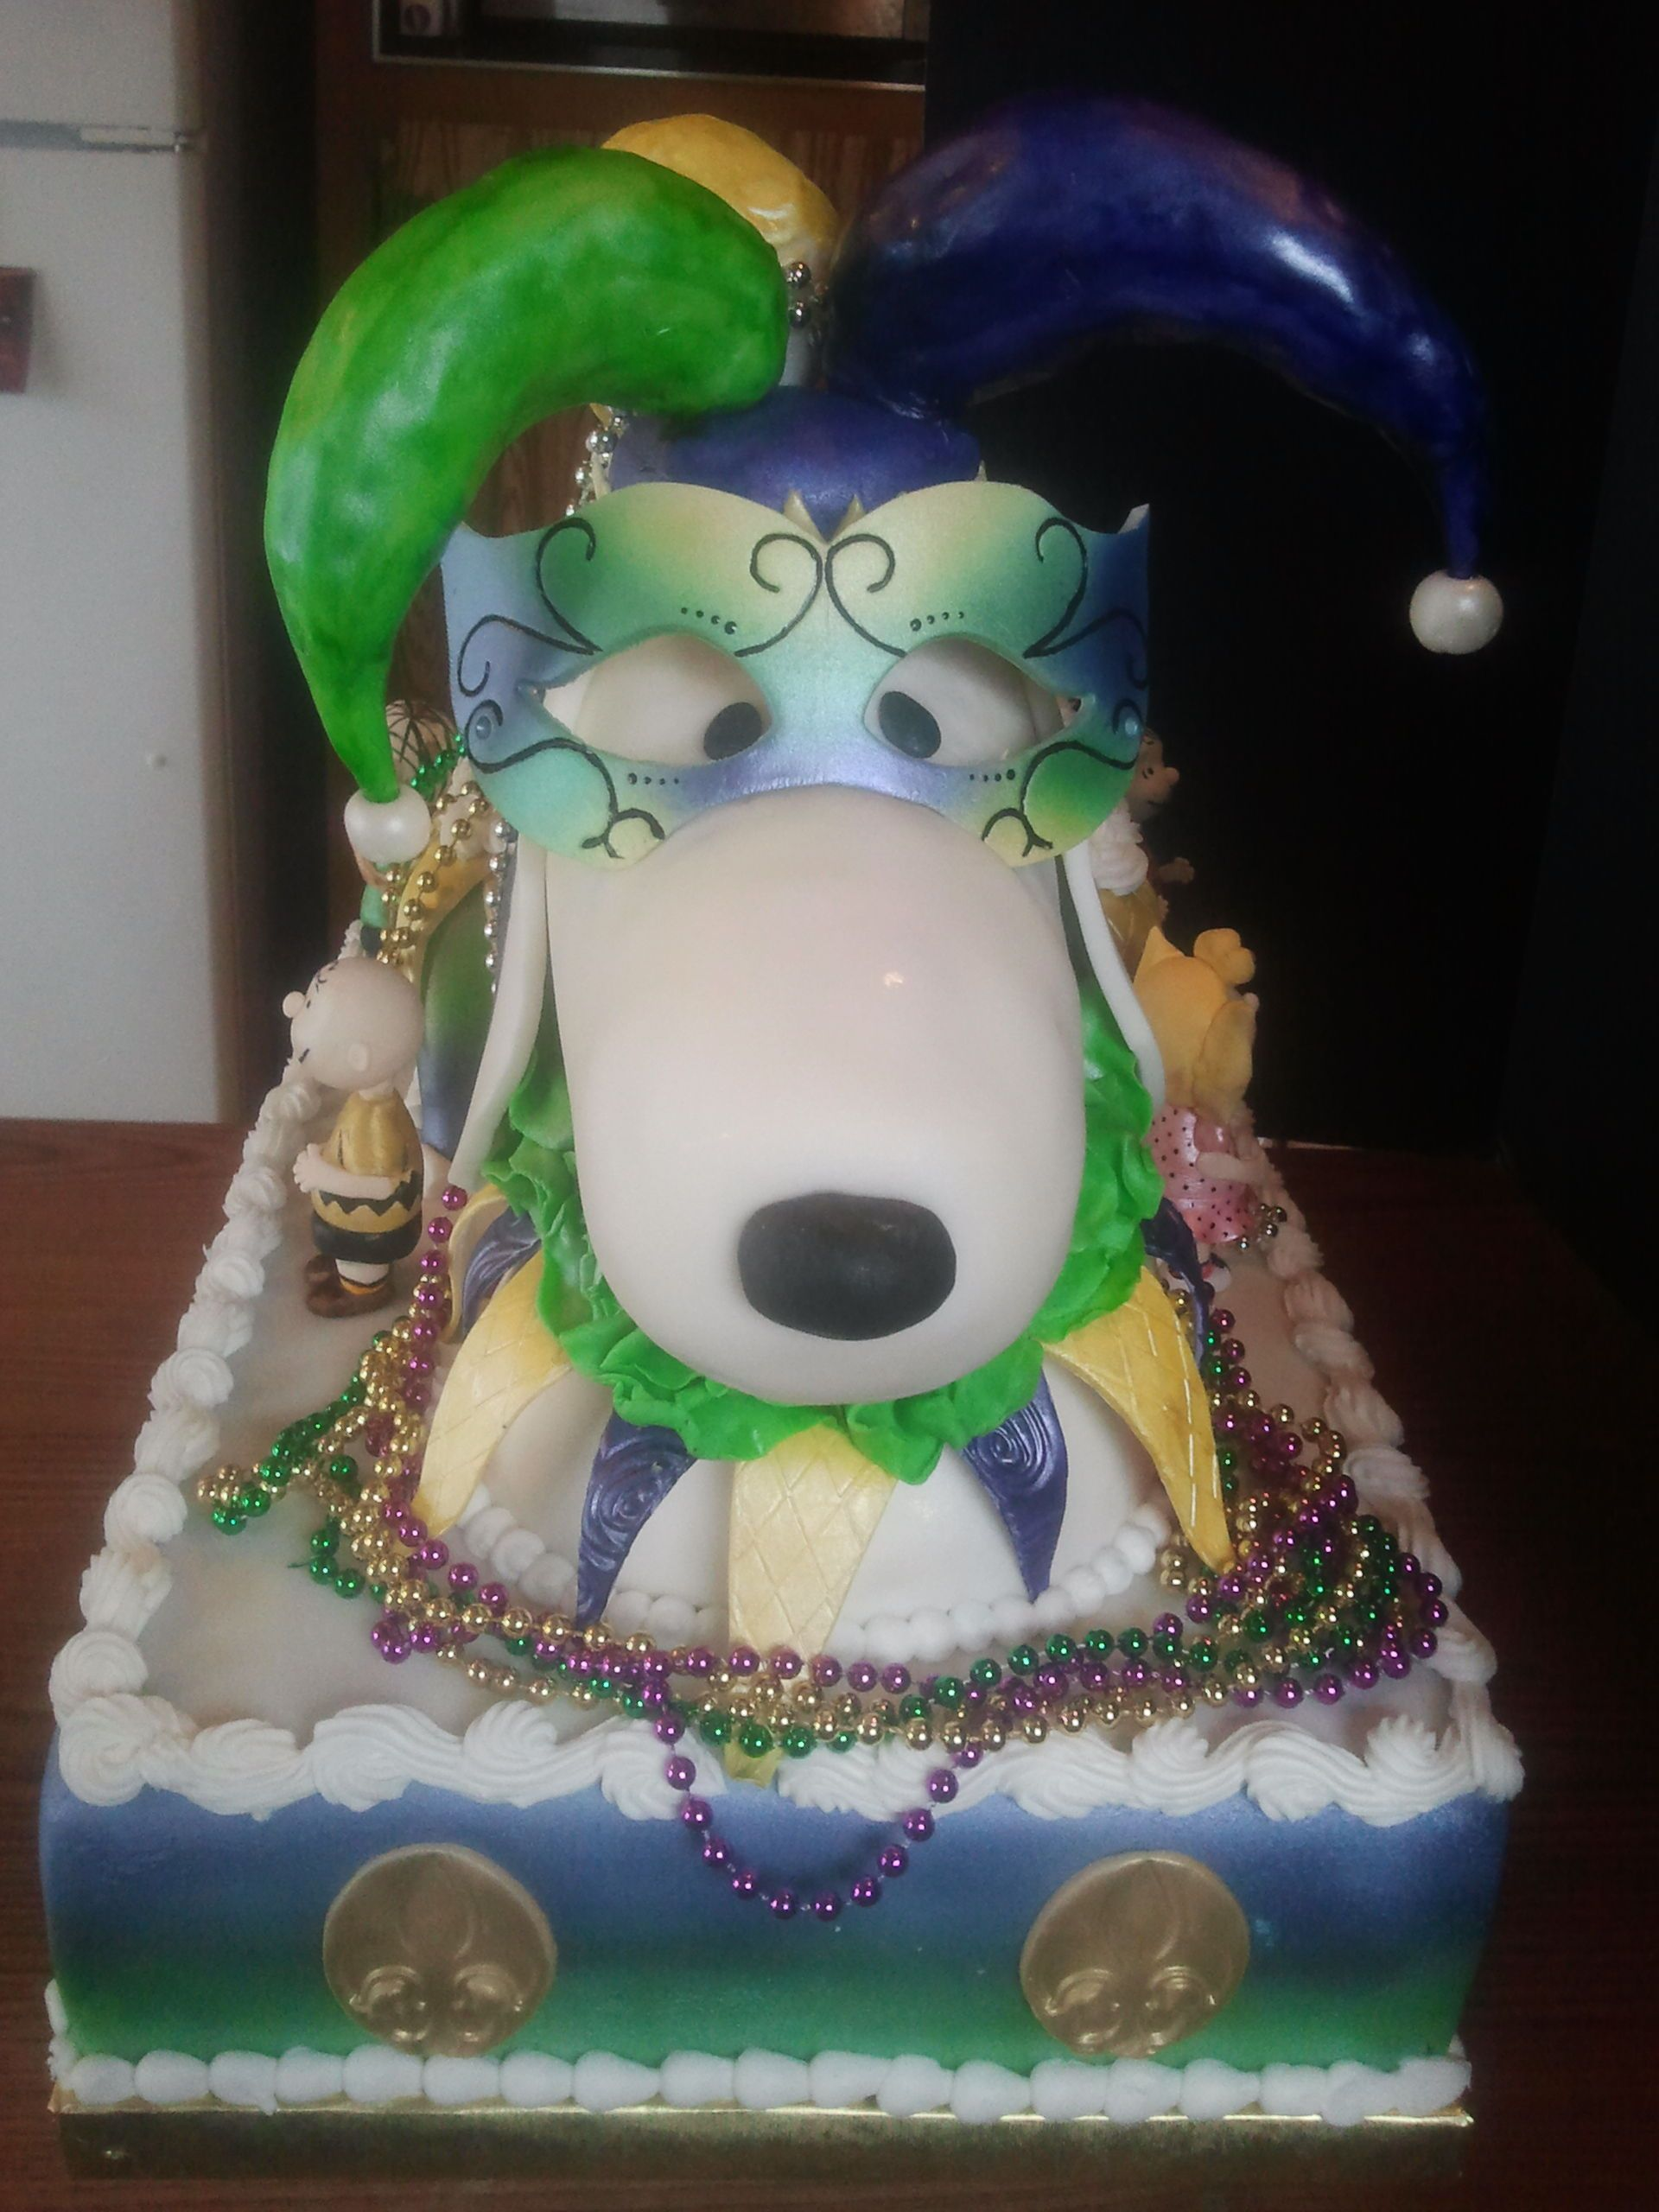 Birthday Cakes Jester Snoopy Is The Head Of The Mardi Gras Float